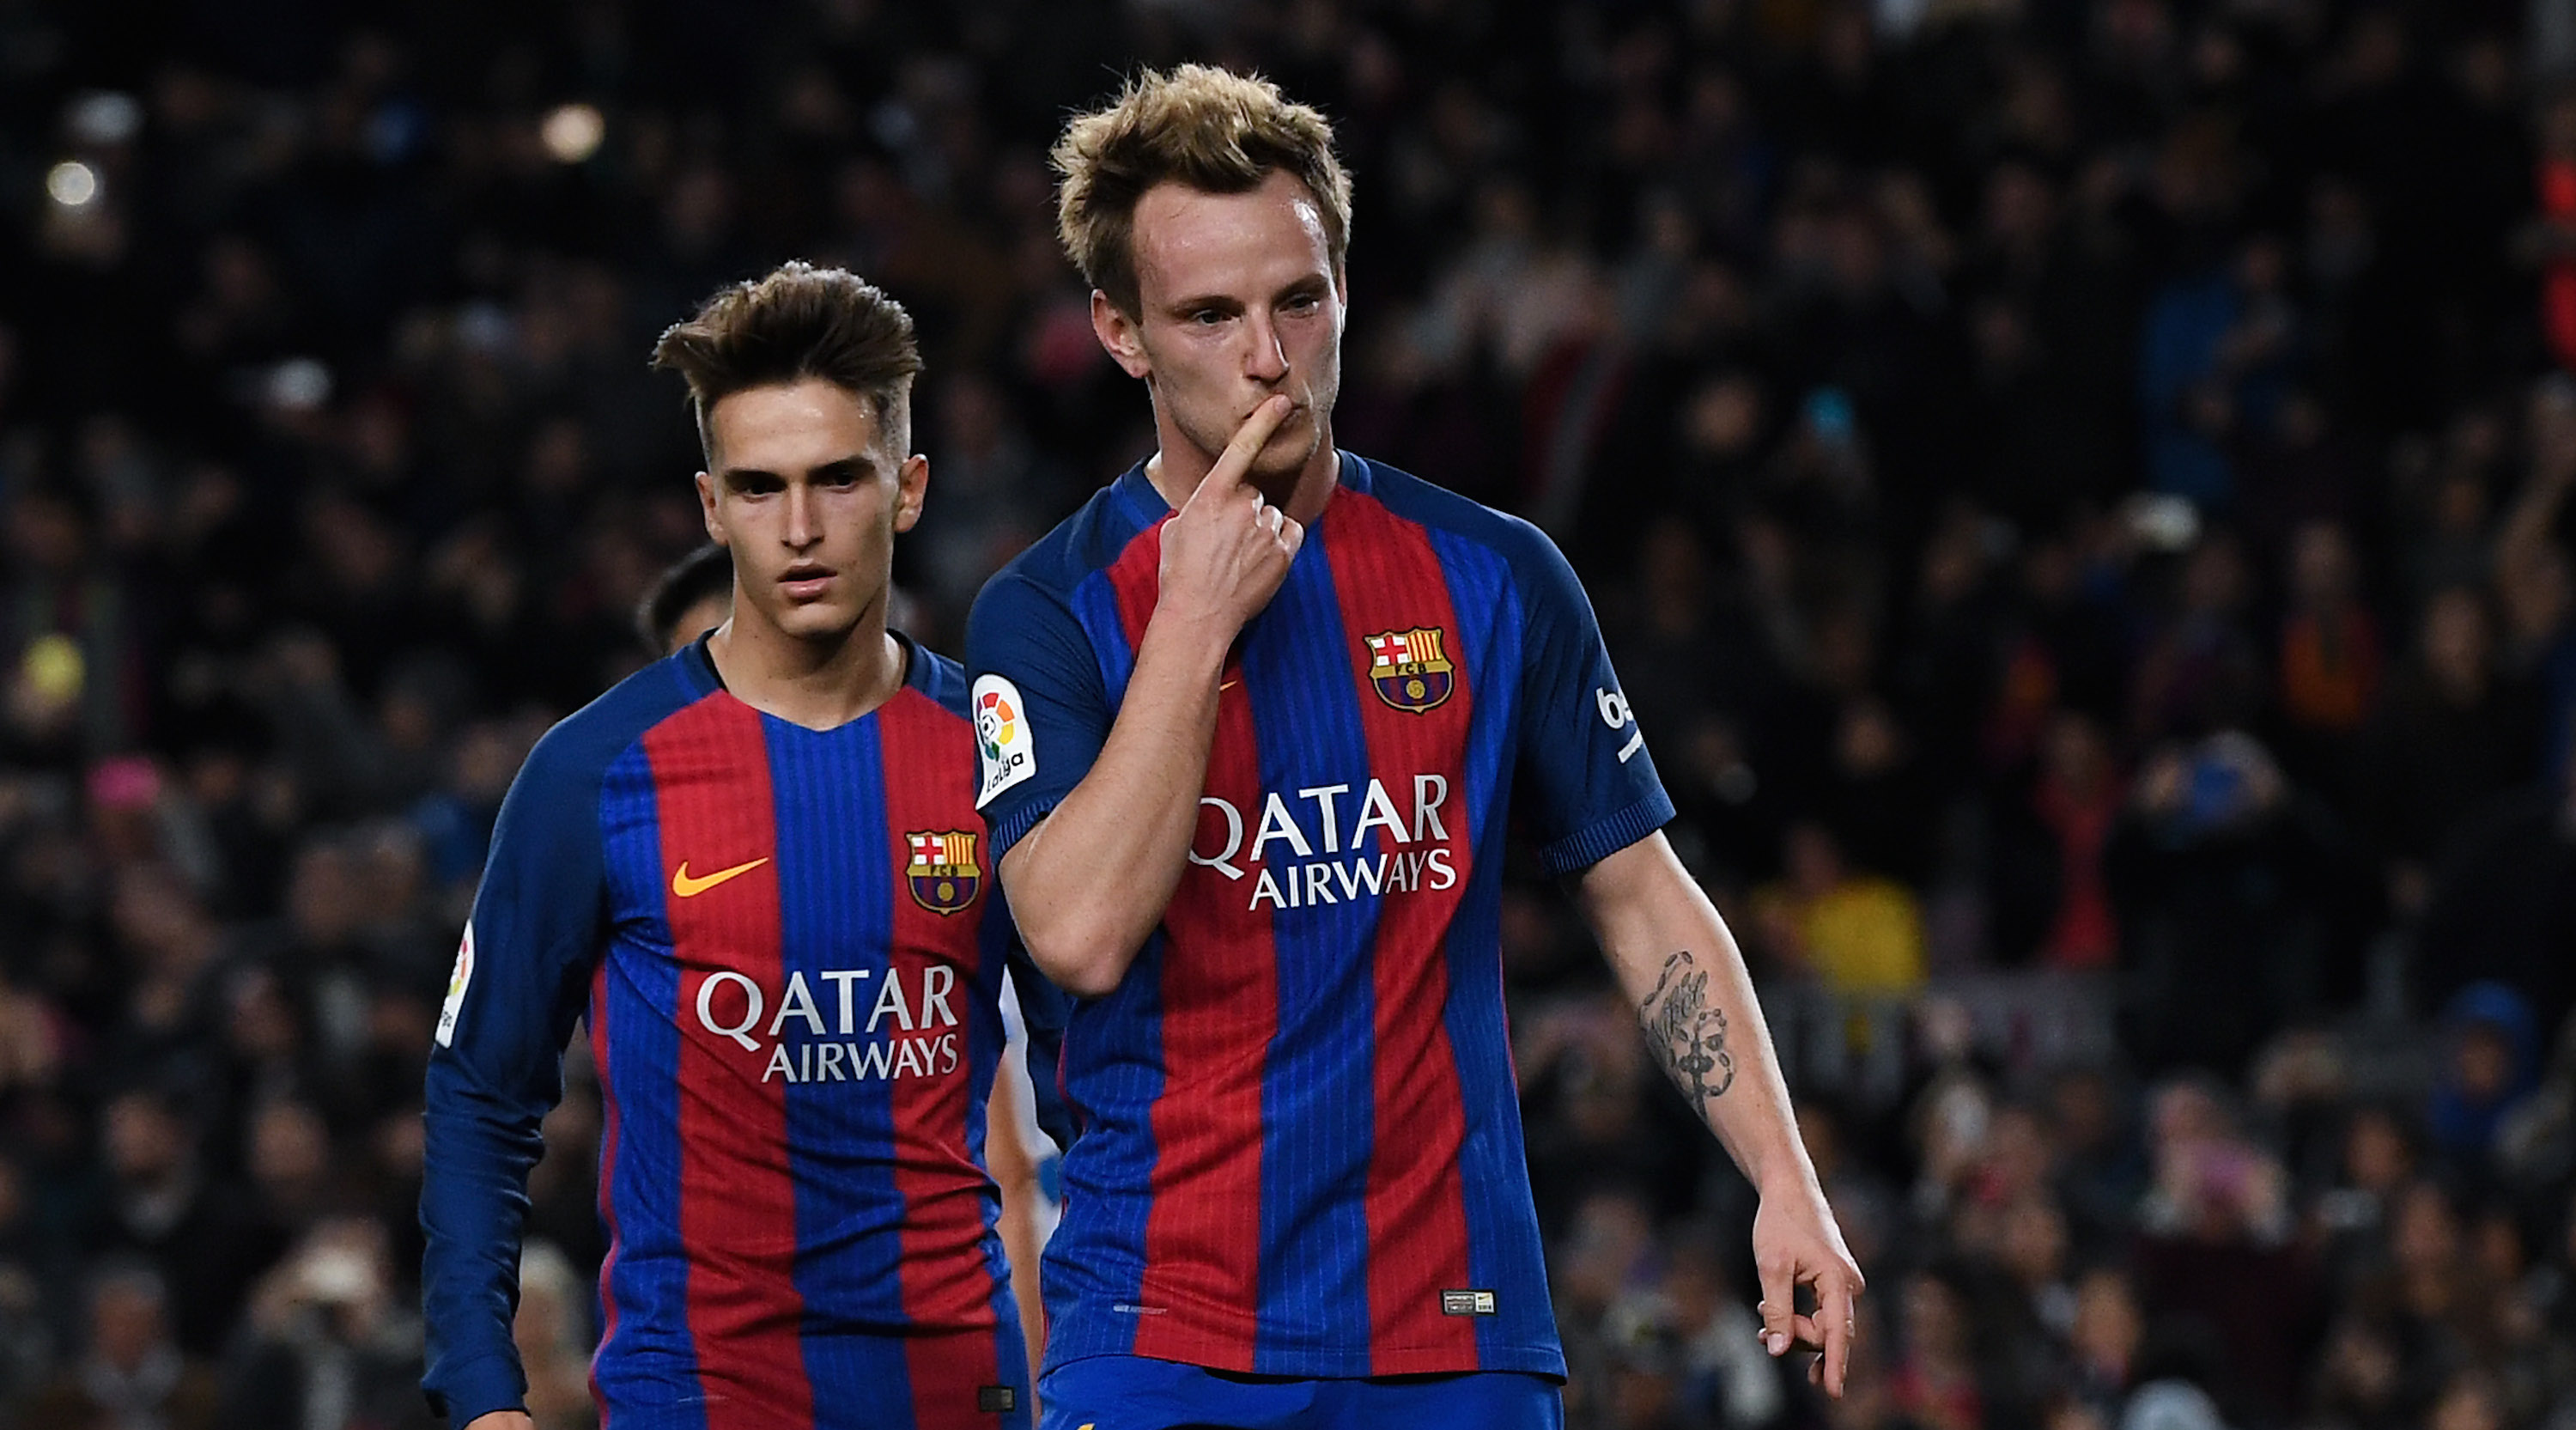 BARCELONA, SPAIN - DECEMBER 21: Ivan Rakitic of FC Barcelona celebrates after scoring from the penalty spot his team's second goal during the Copa del Rey round of 32 second leg match between FC Barcelona and Hercules at Camp Nou on December 21, 2016 in Barcelona, Spain. (Photo by David Ramos/Getty Images)